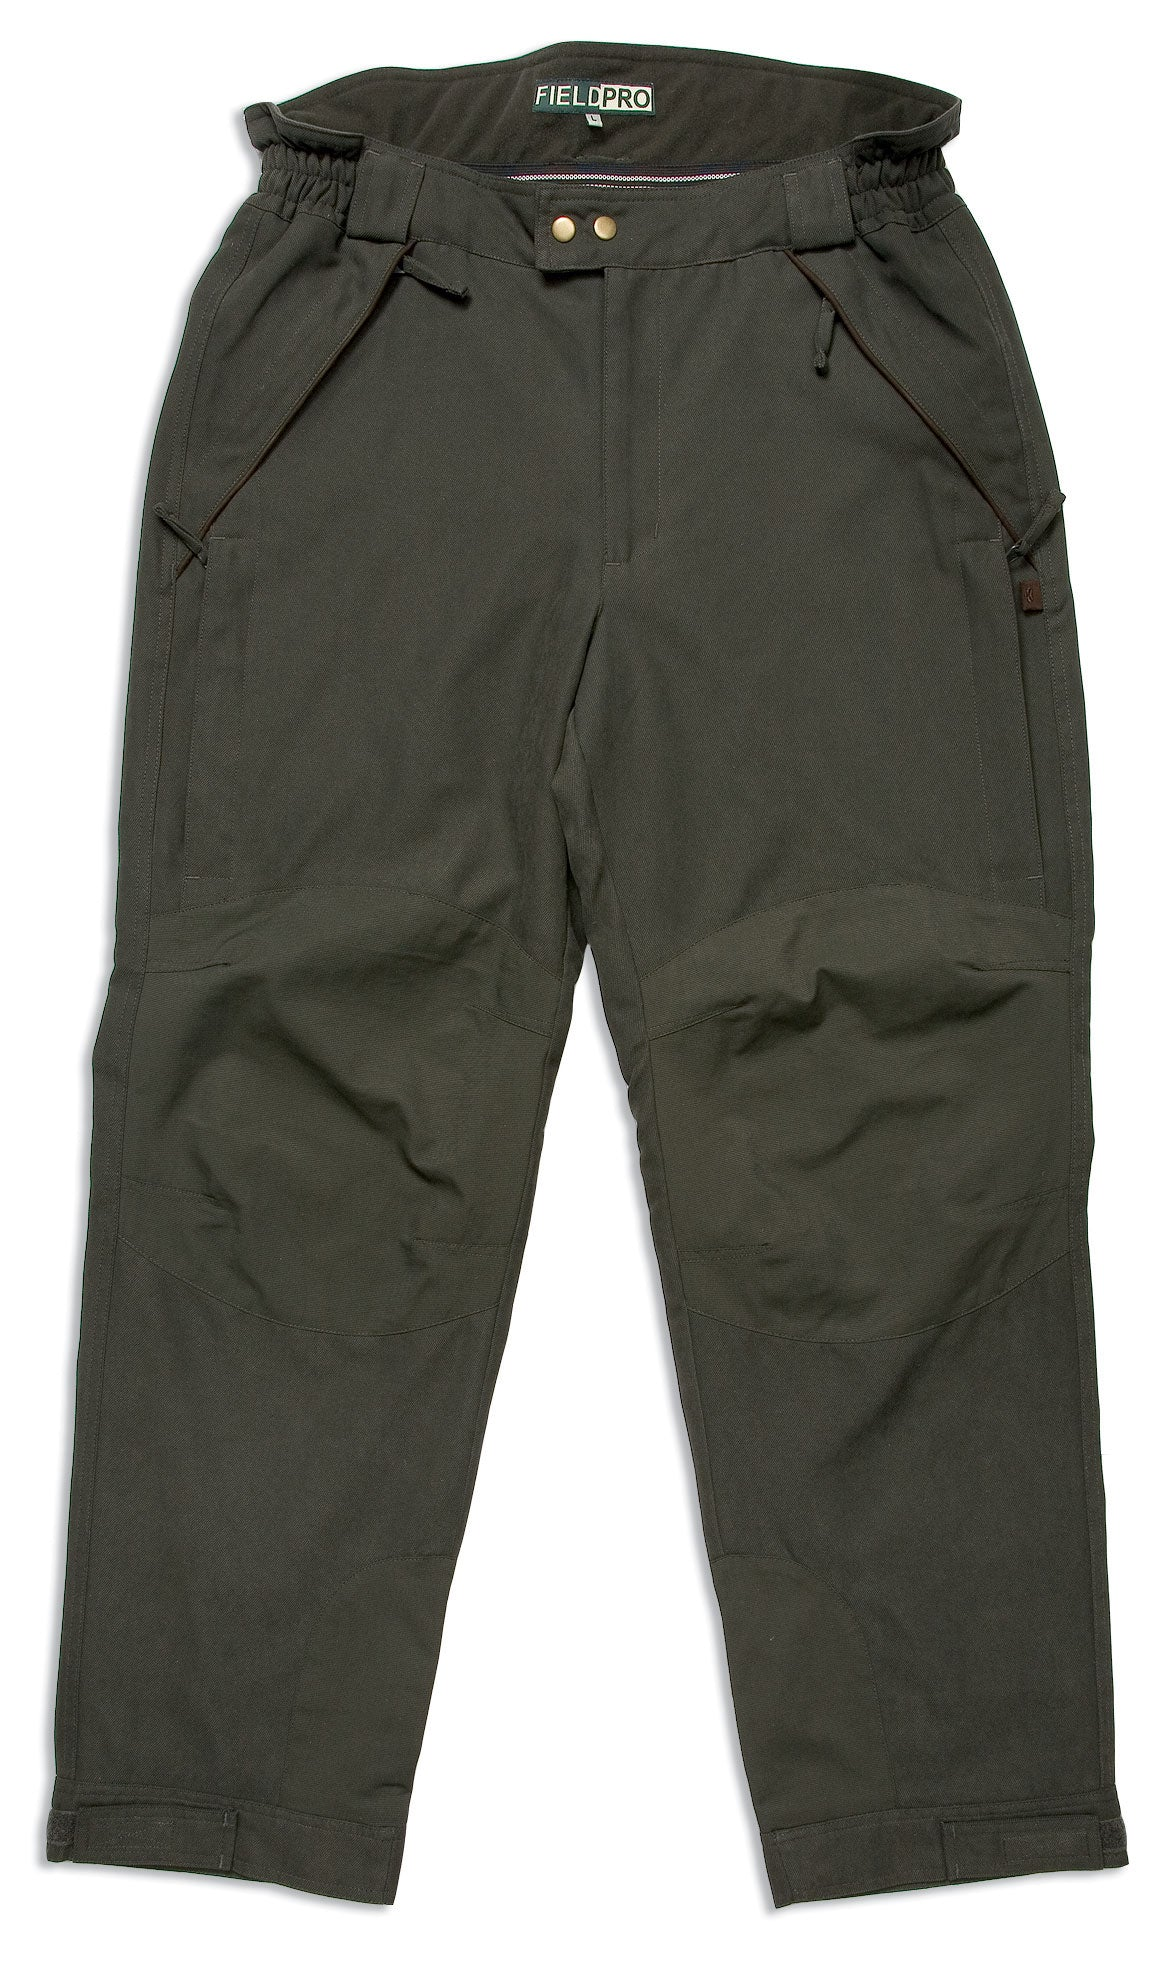 Hoggs Ranger Field trousers - Waterproof Breathable ideal for Shooting